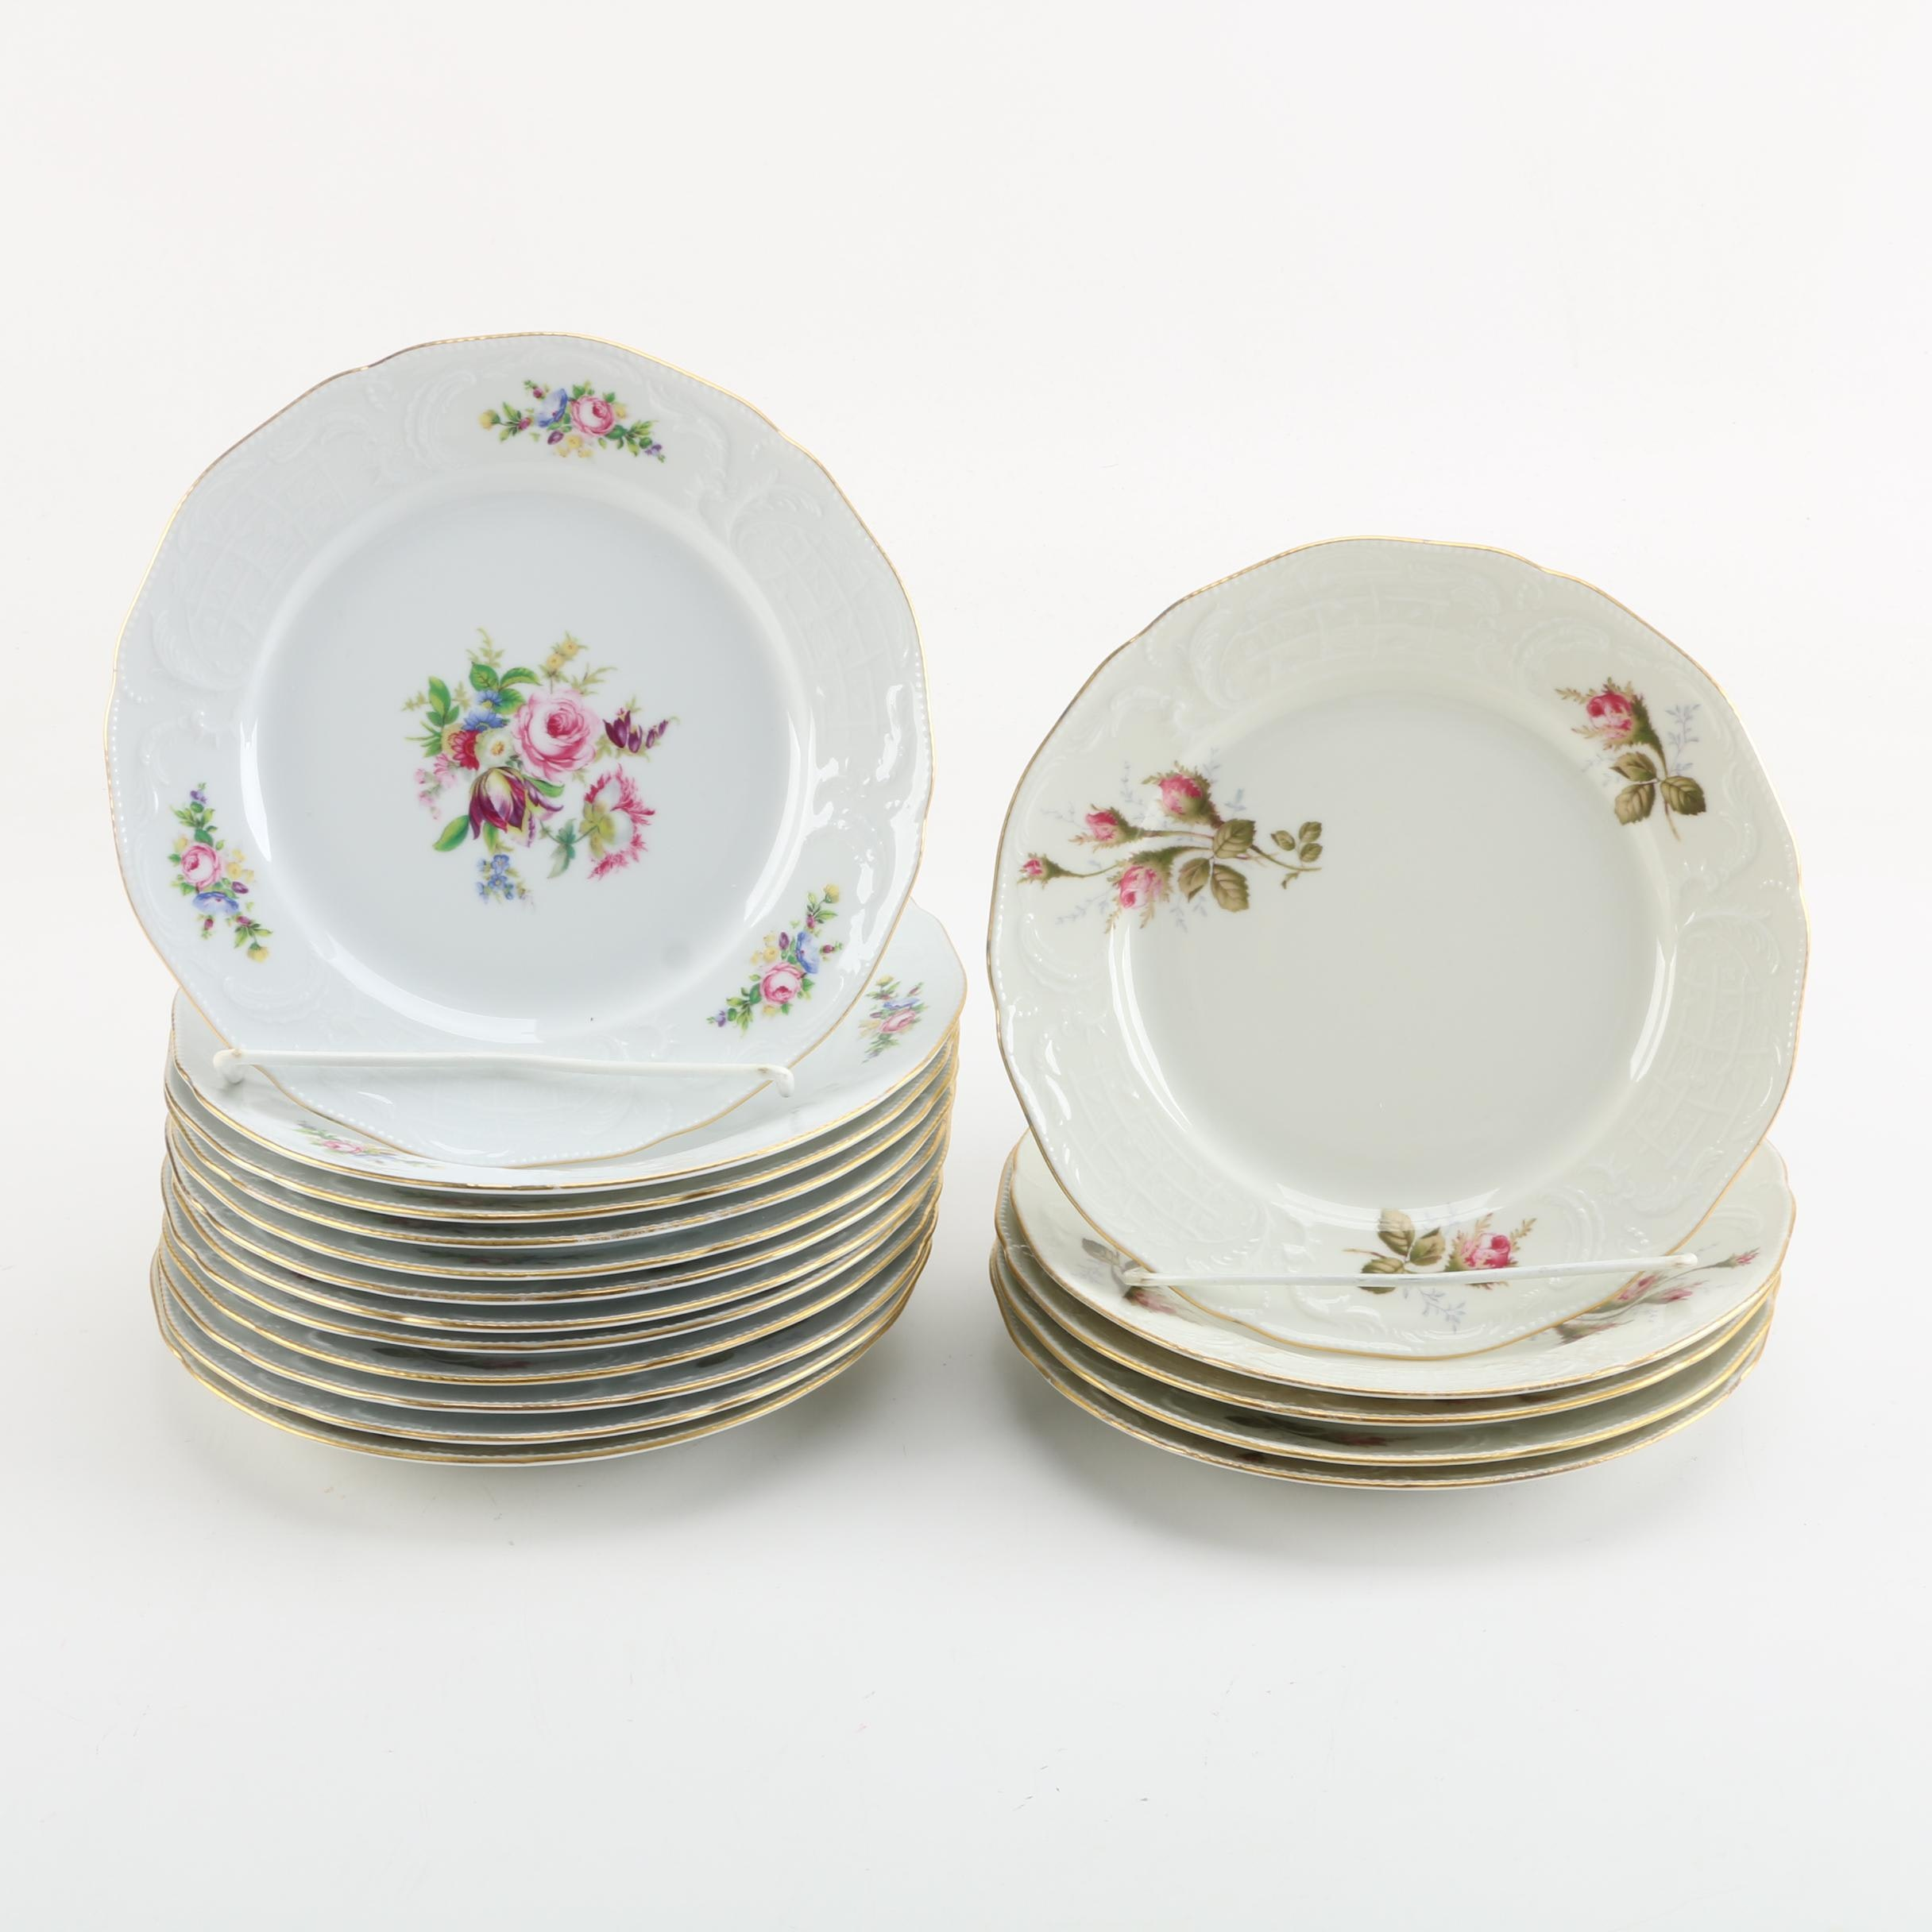 Rosenthal Classic Porcelain Salad Plates & Vintage Tableware Auction | Antique Tableware Auctions in Designer ...